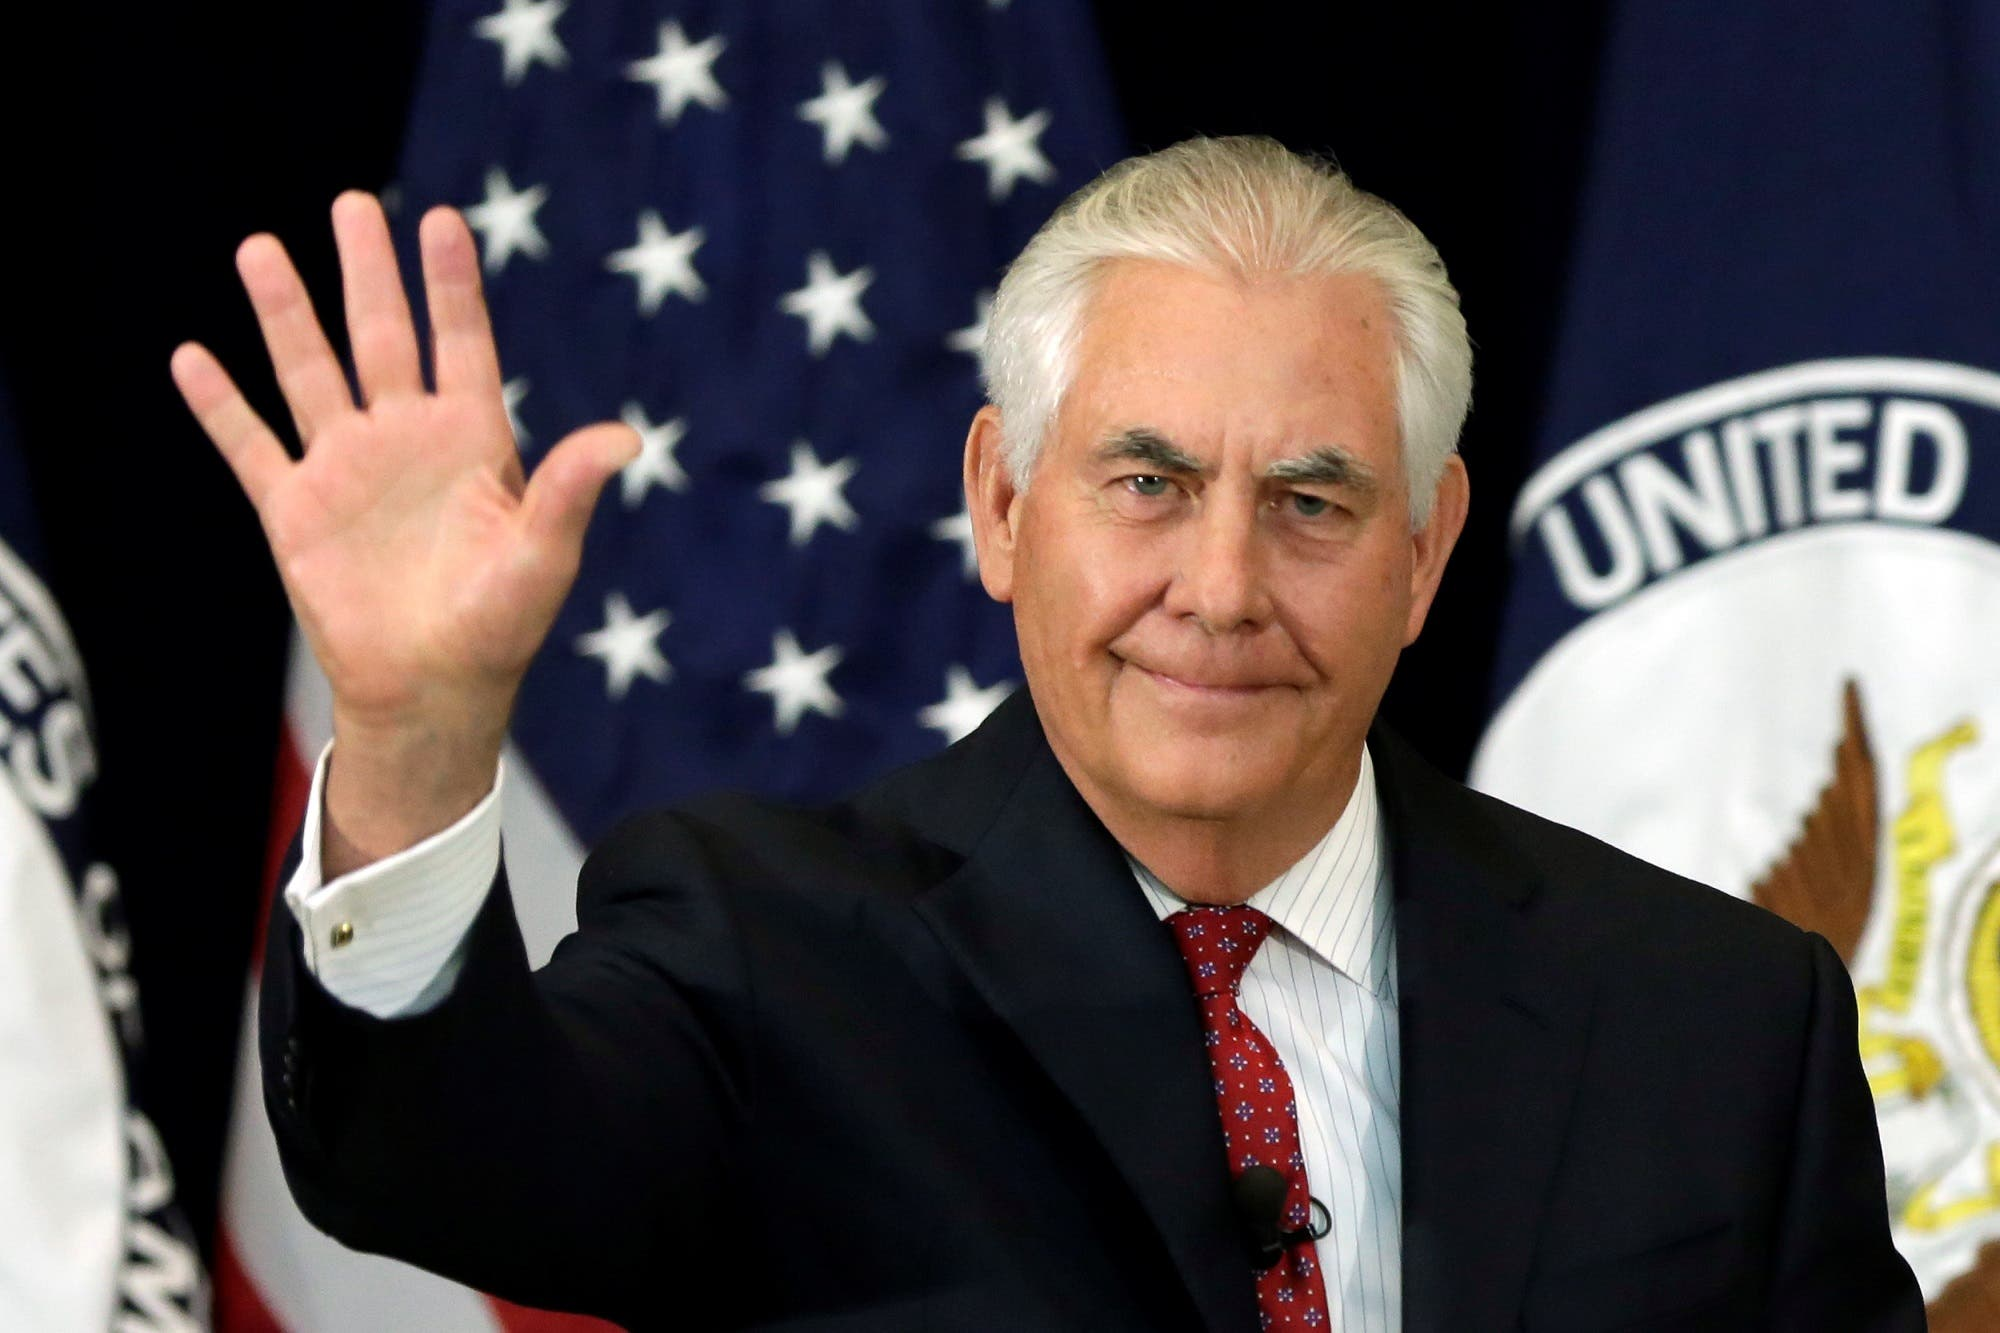 US Secretary of State Rex Tillerson waves after delivering remarks to the employees at the State Department in Washington, US, May 3, 2017. REUTERS/